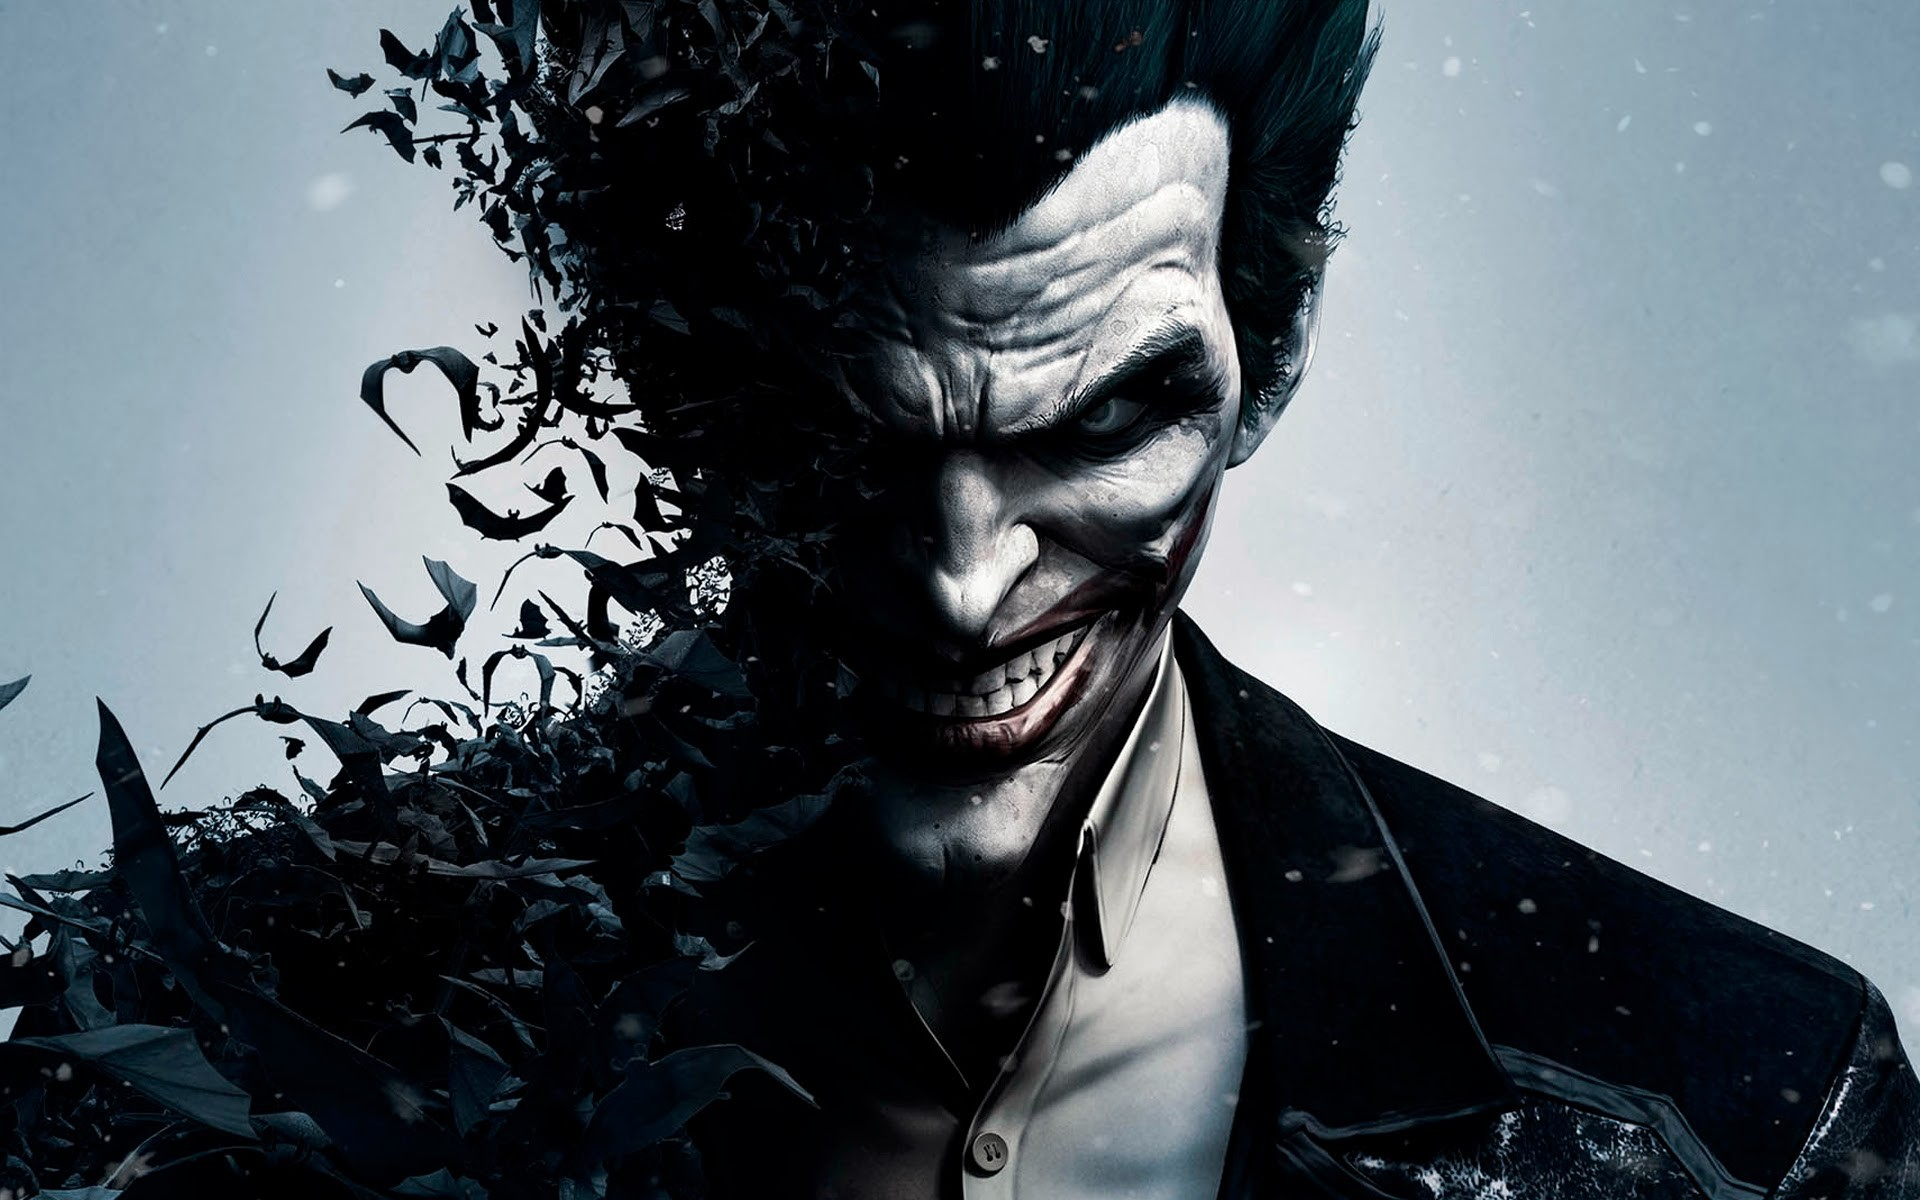 Res: 1920x1200, Cool Joker Wallpaper for iPhone Wallpaper